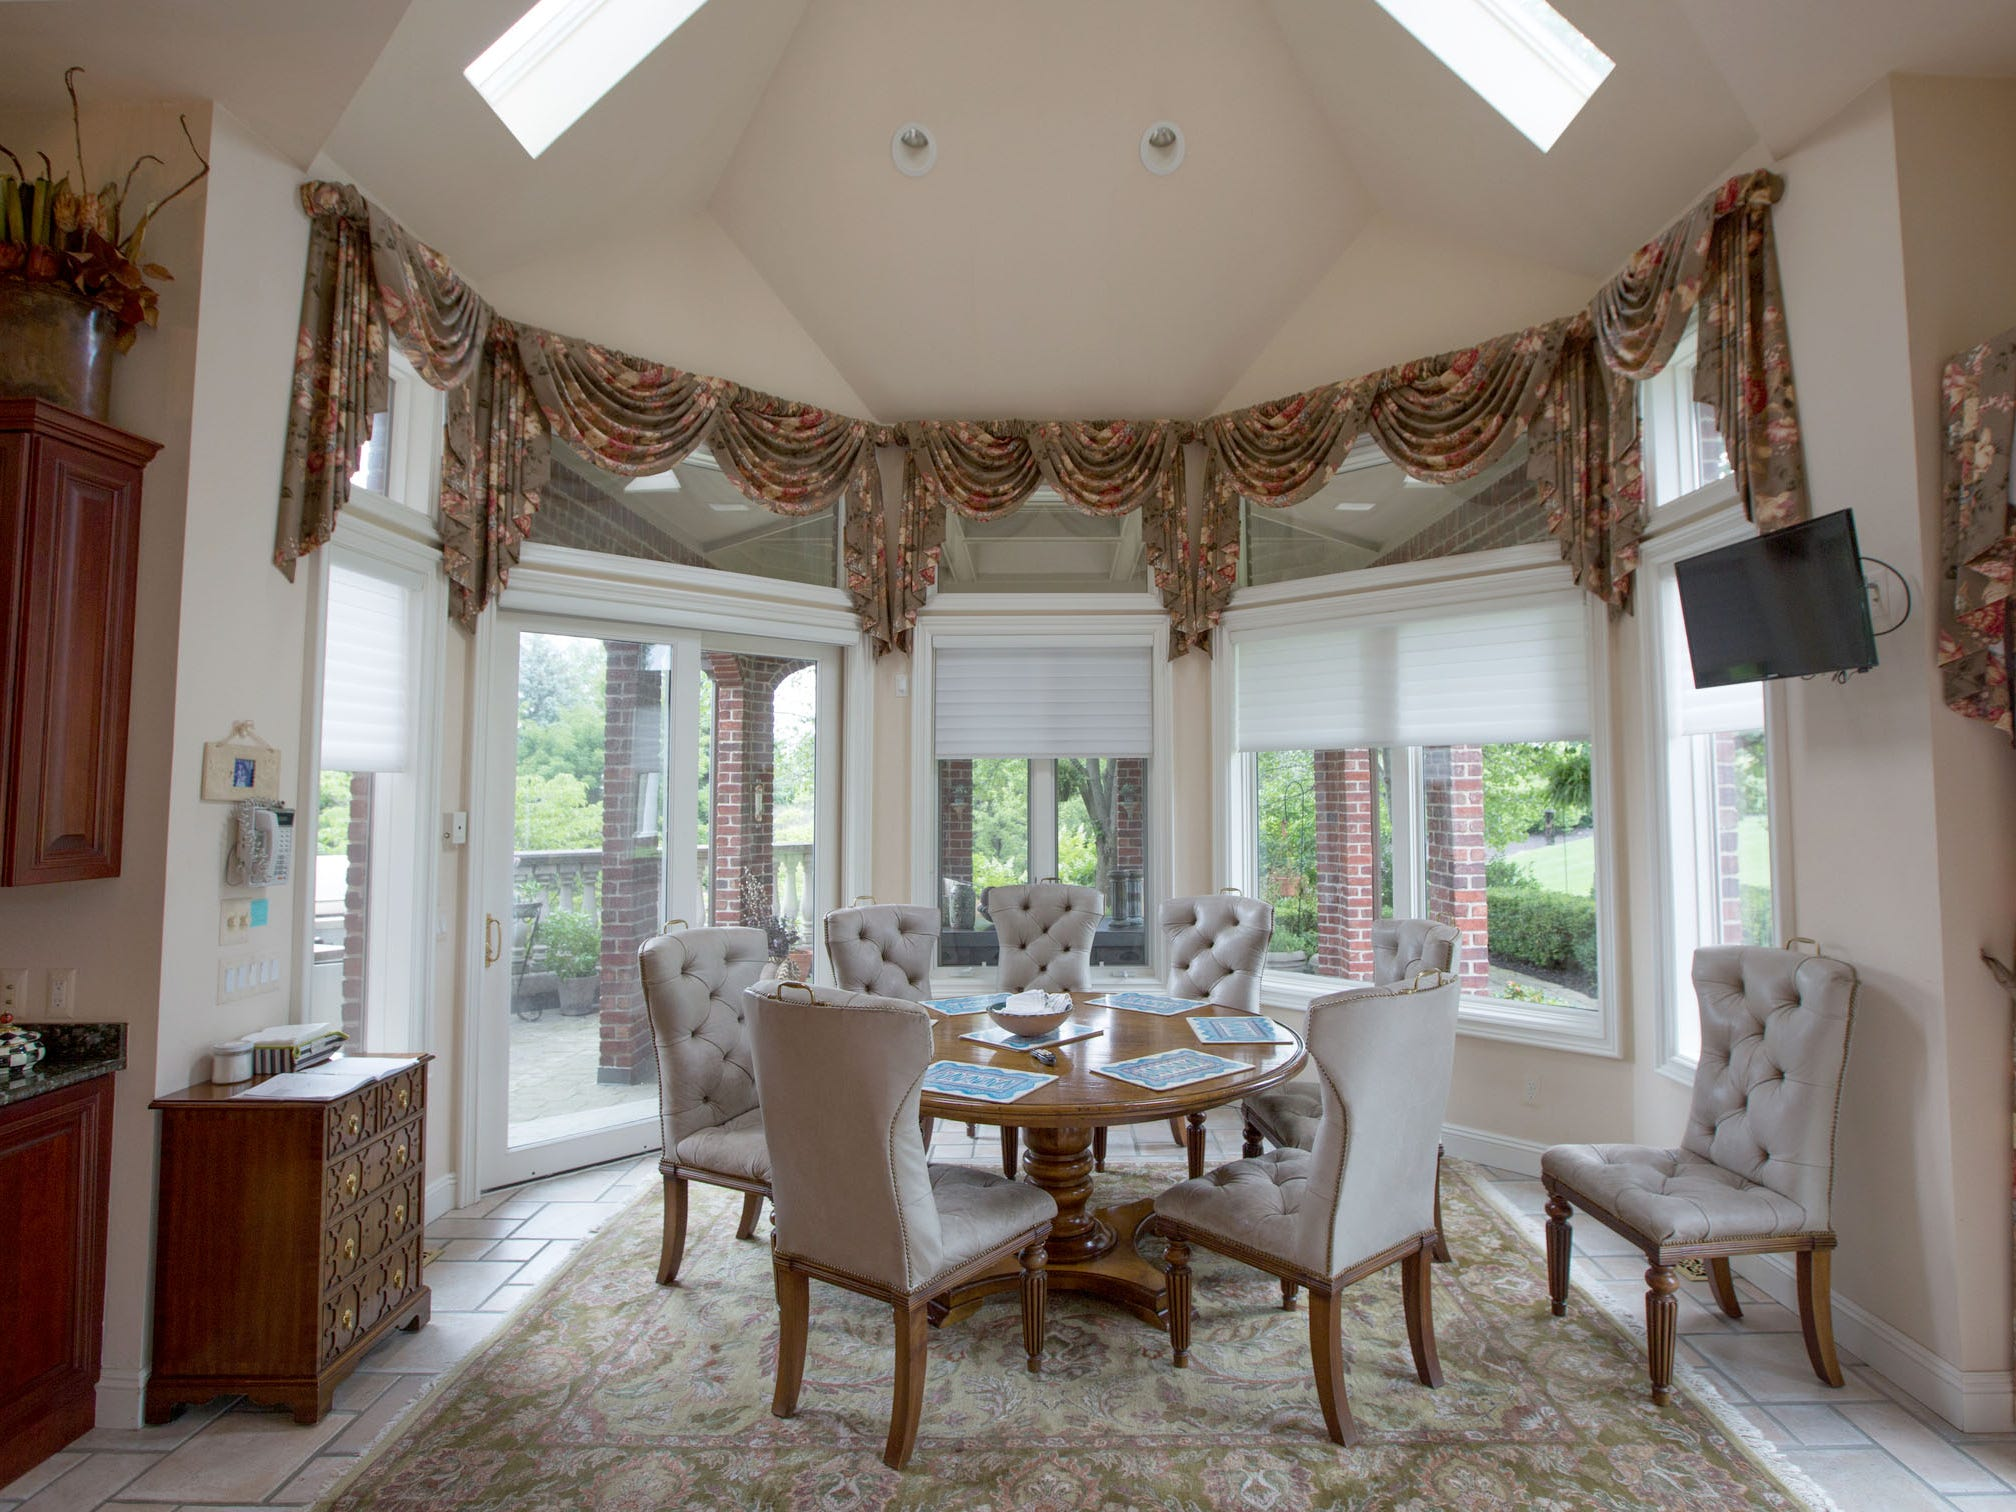 Off of the kitchen is a octagon breakfast room inside an octagon brick portico.